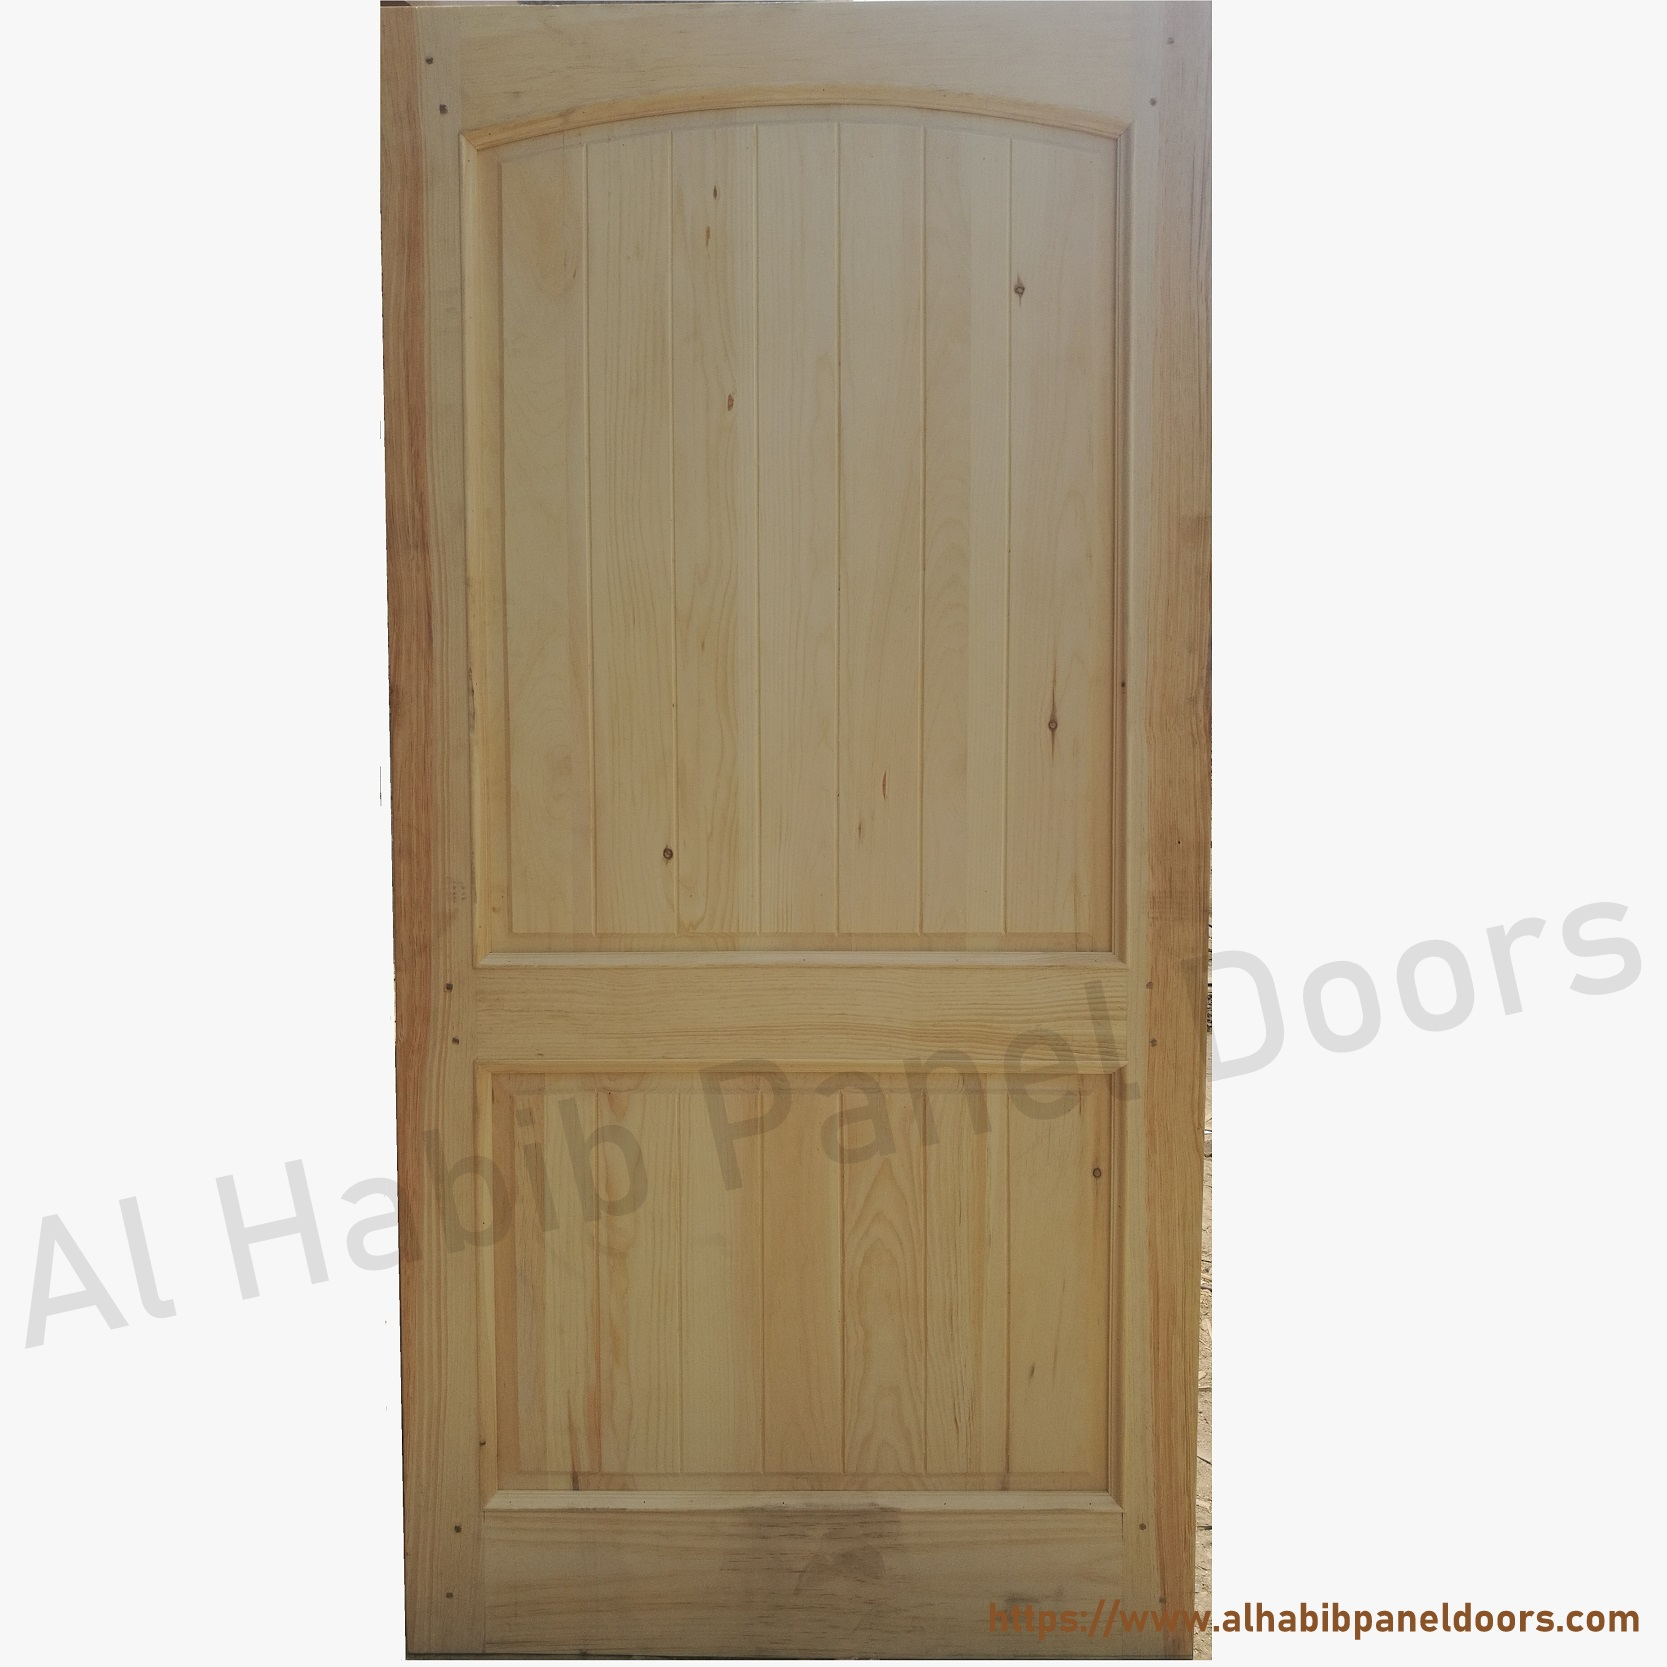 Solid wood door solid wood doors al habib panel doors for Door design in pakistan